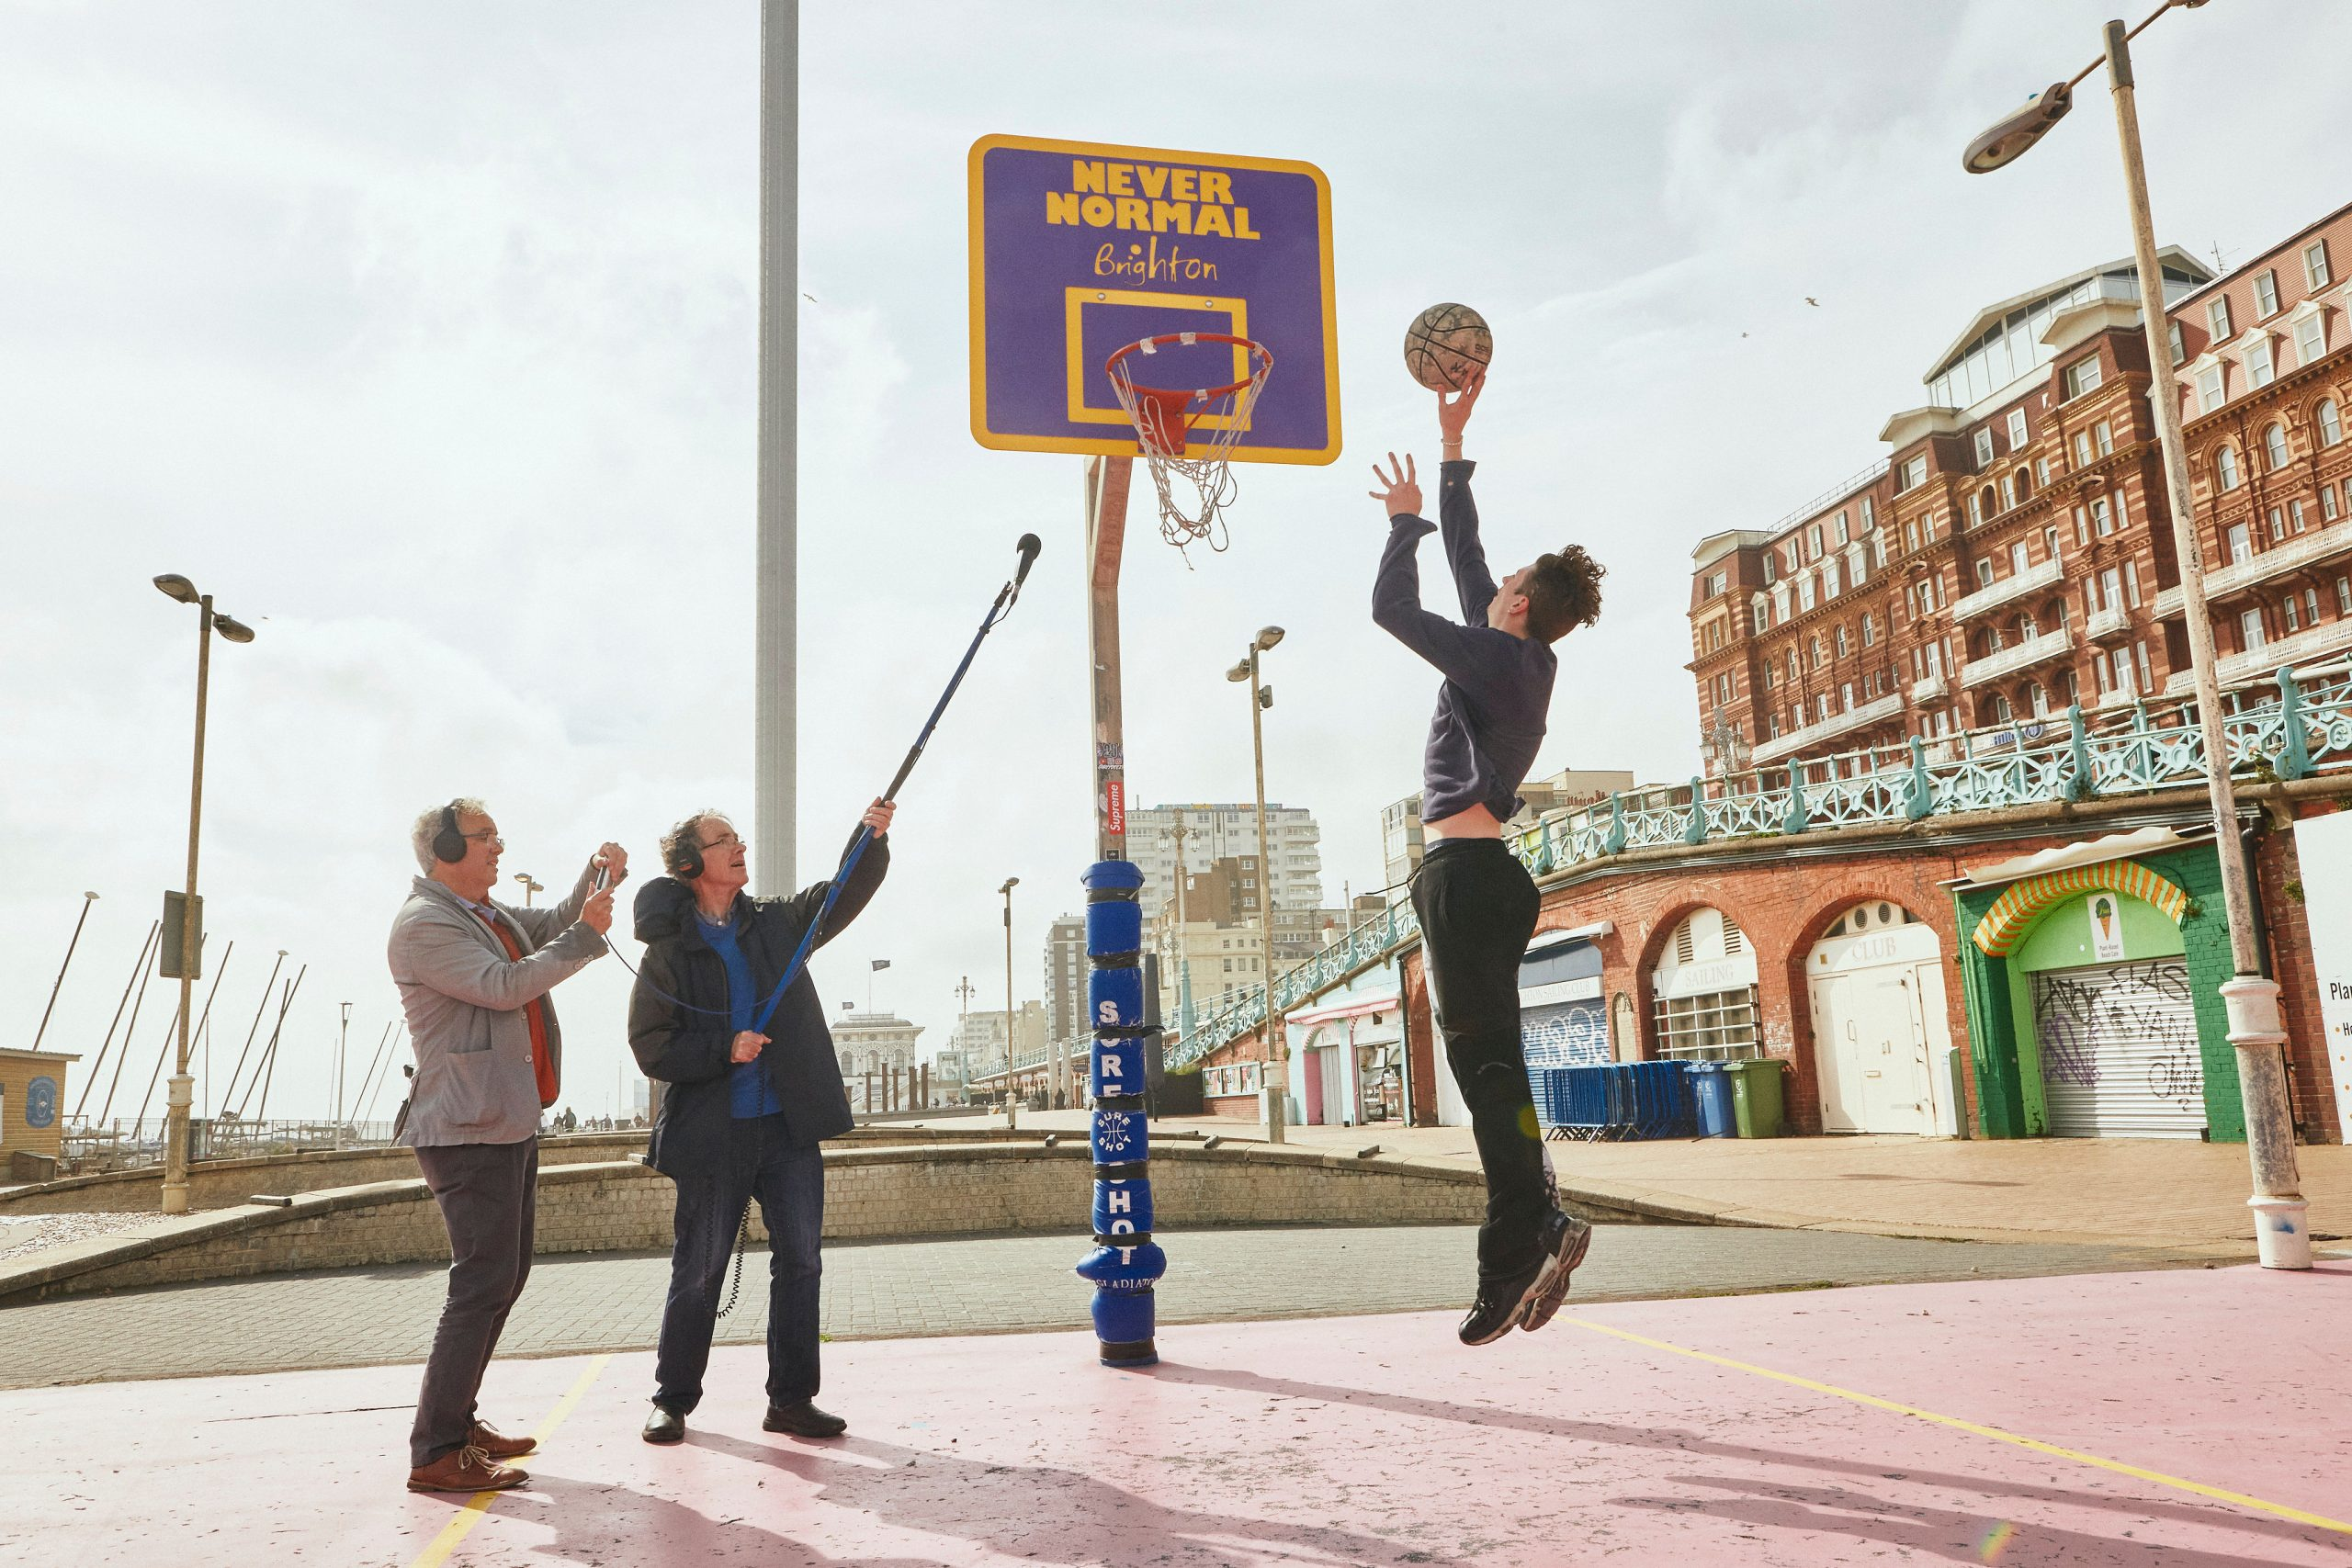 Man jumping in the air about to dunk a basketball into the net, on the right are two men one of which is holding up a microphone recording the sounds